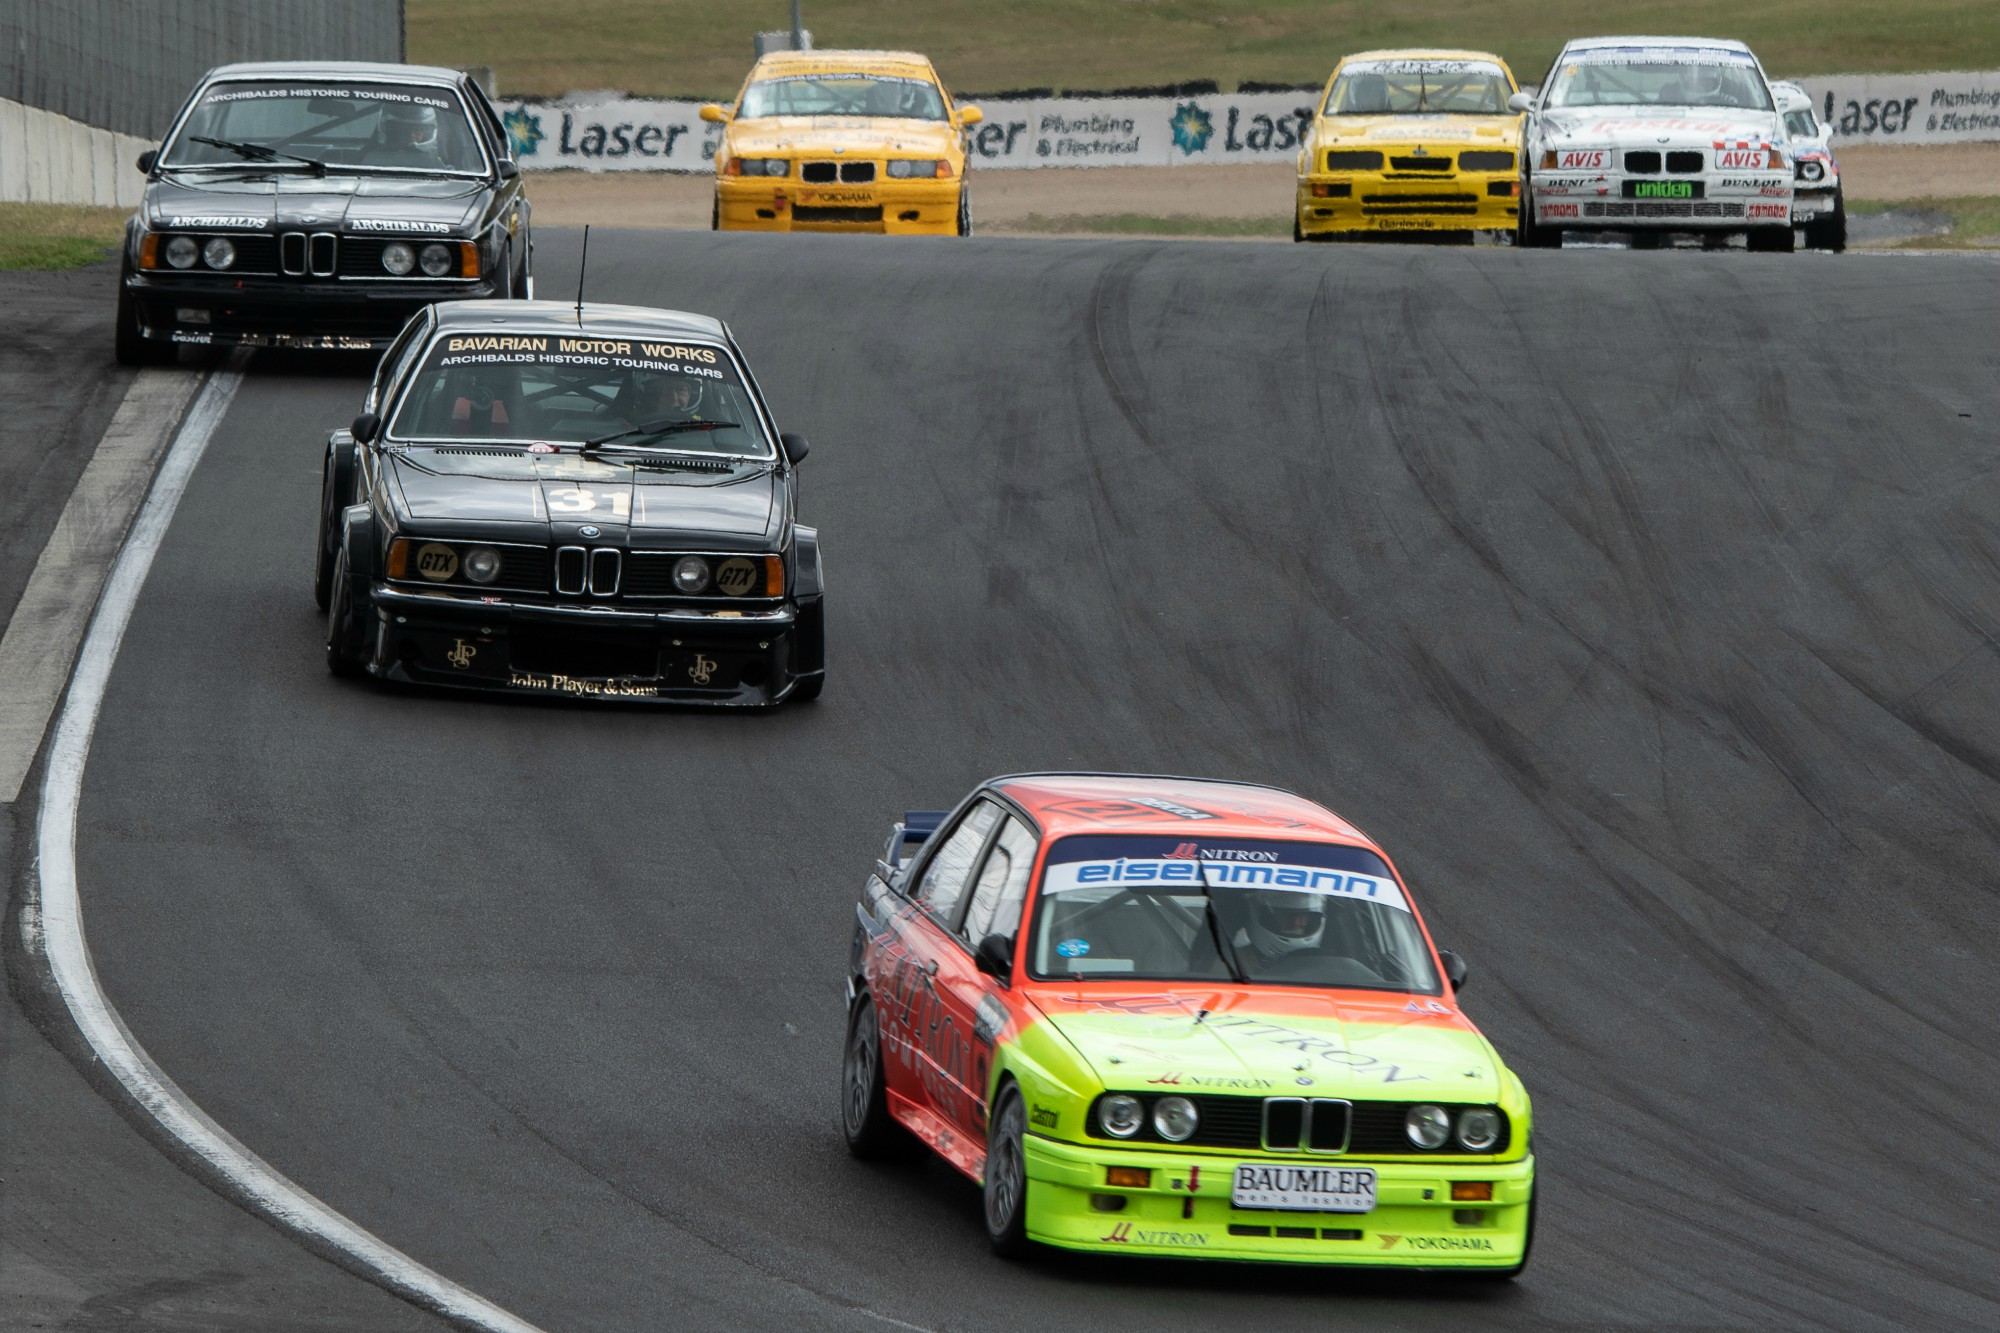 BMW M3 leads 635 CSi in the midfield